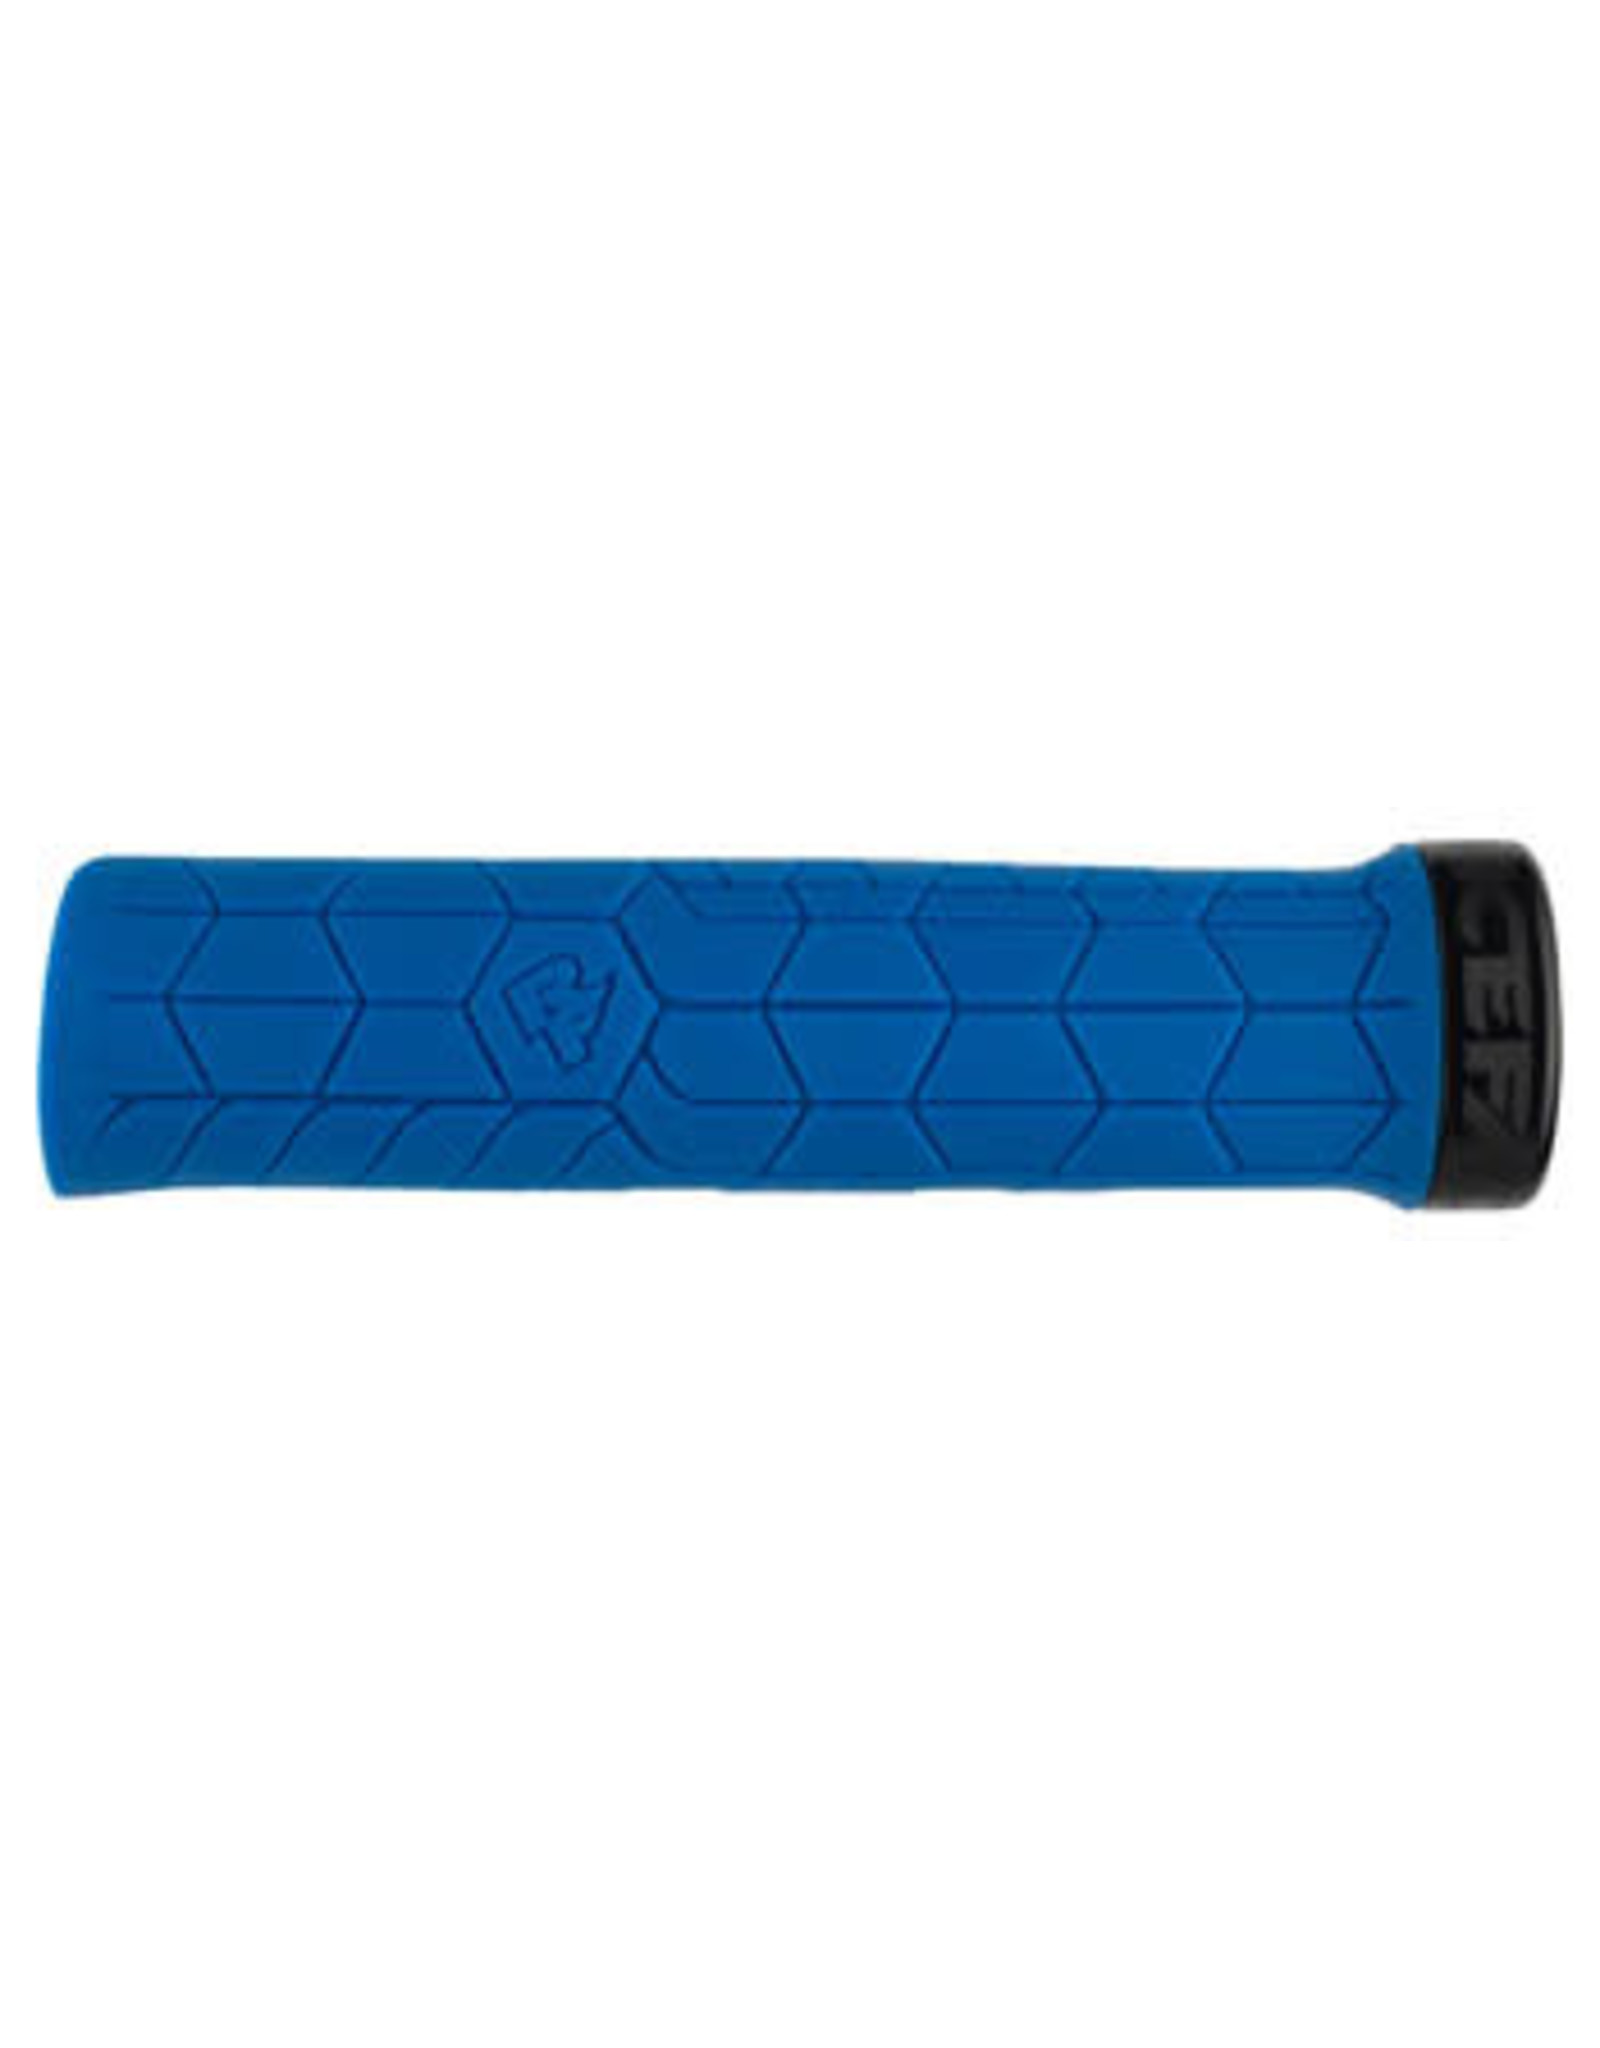 RaceFace RaceFace Getta Grips - Blue, Lock-On, 33mm